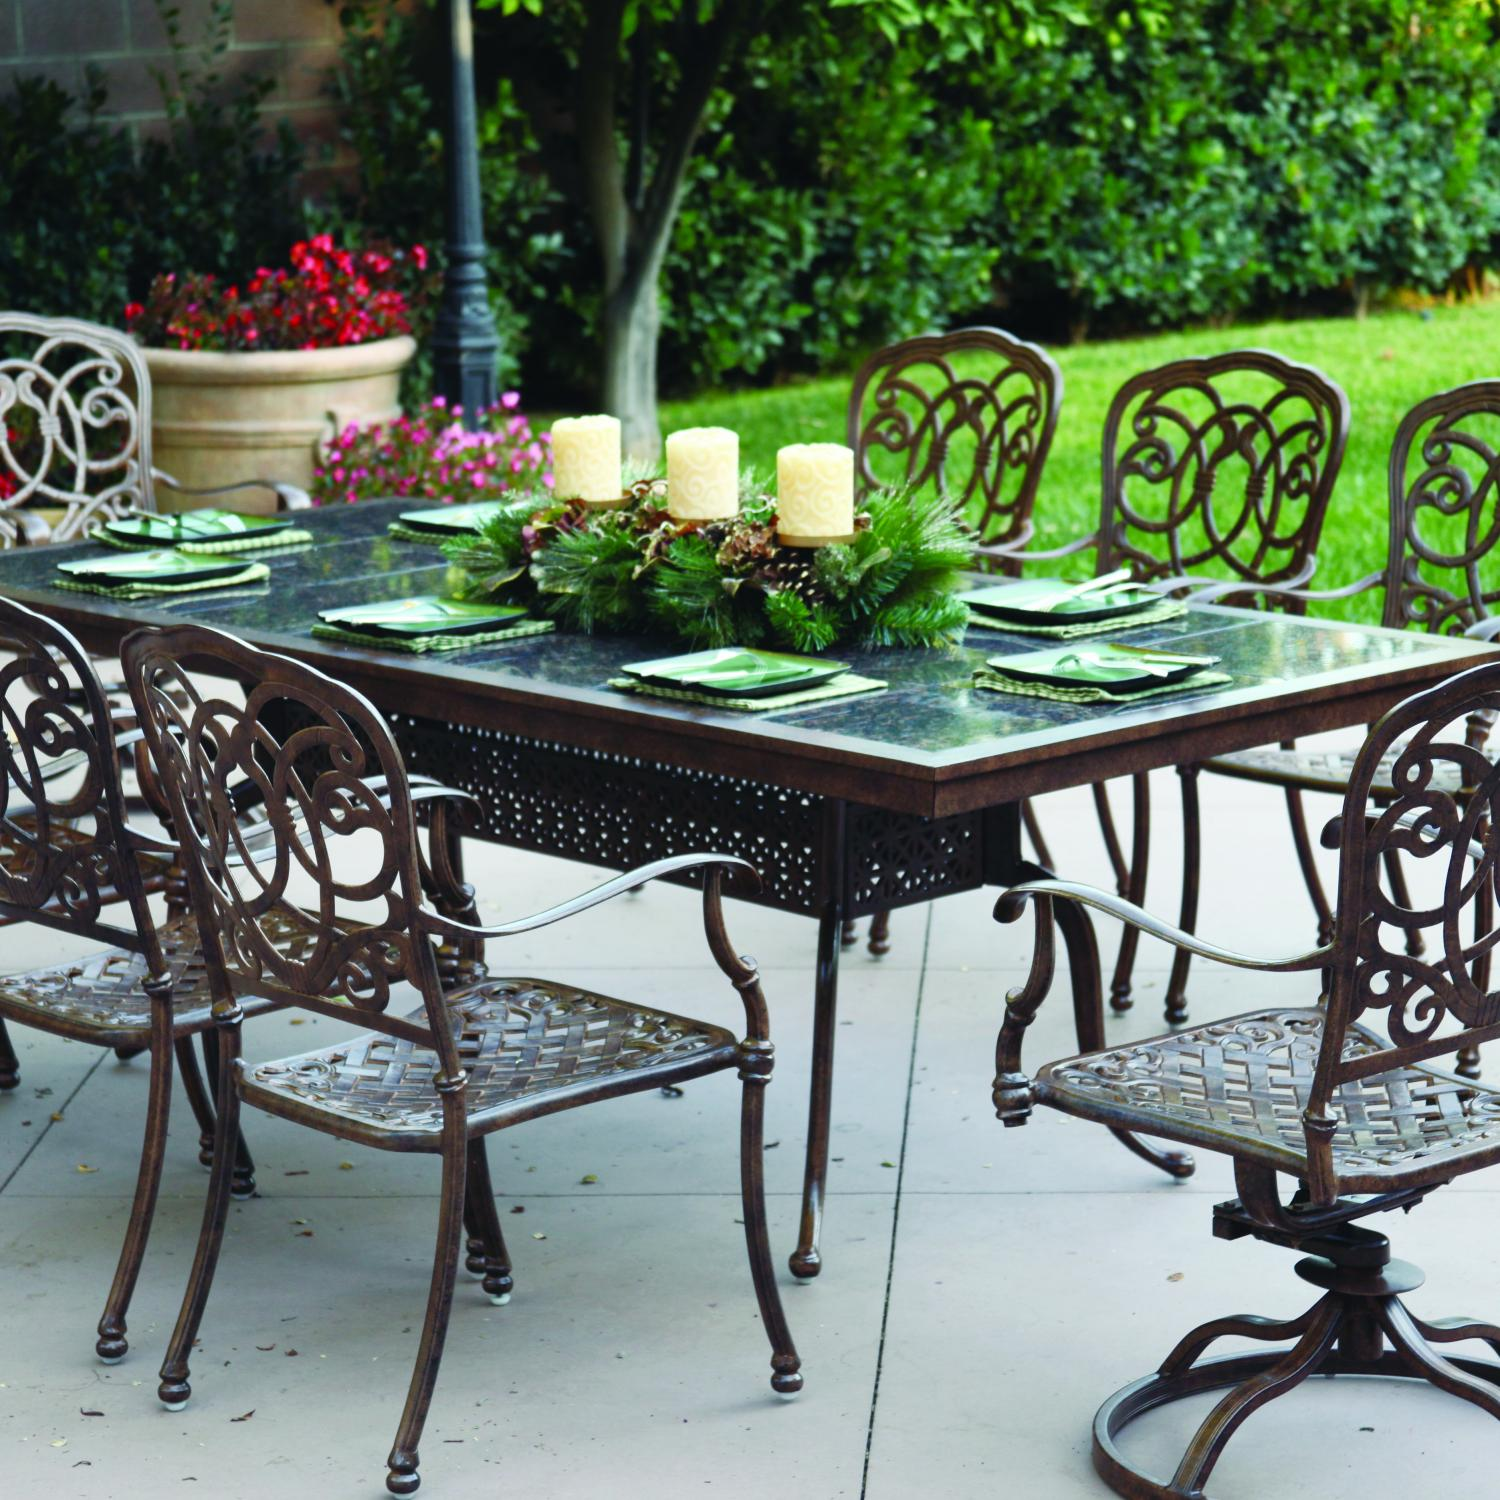 Darlee Florence 8-person Cast Aluminum Patio Dining Set With Granite Top Table - Antique Bronze / Brown Granite Tile at Sears.com